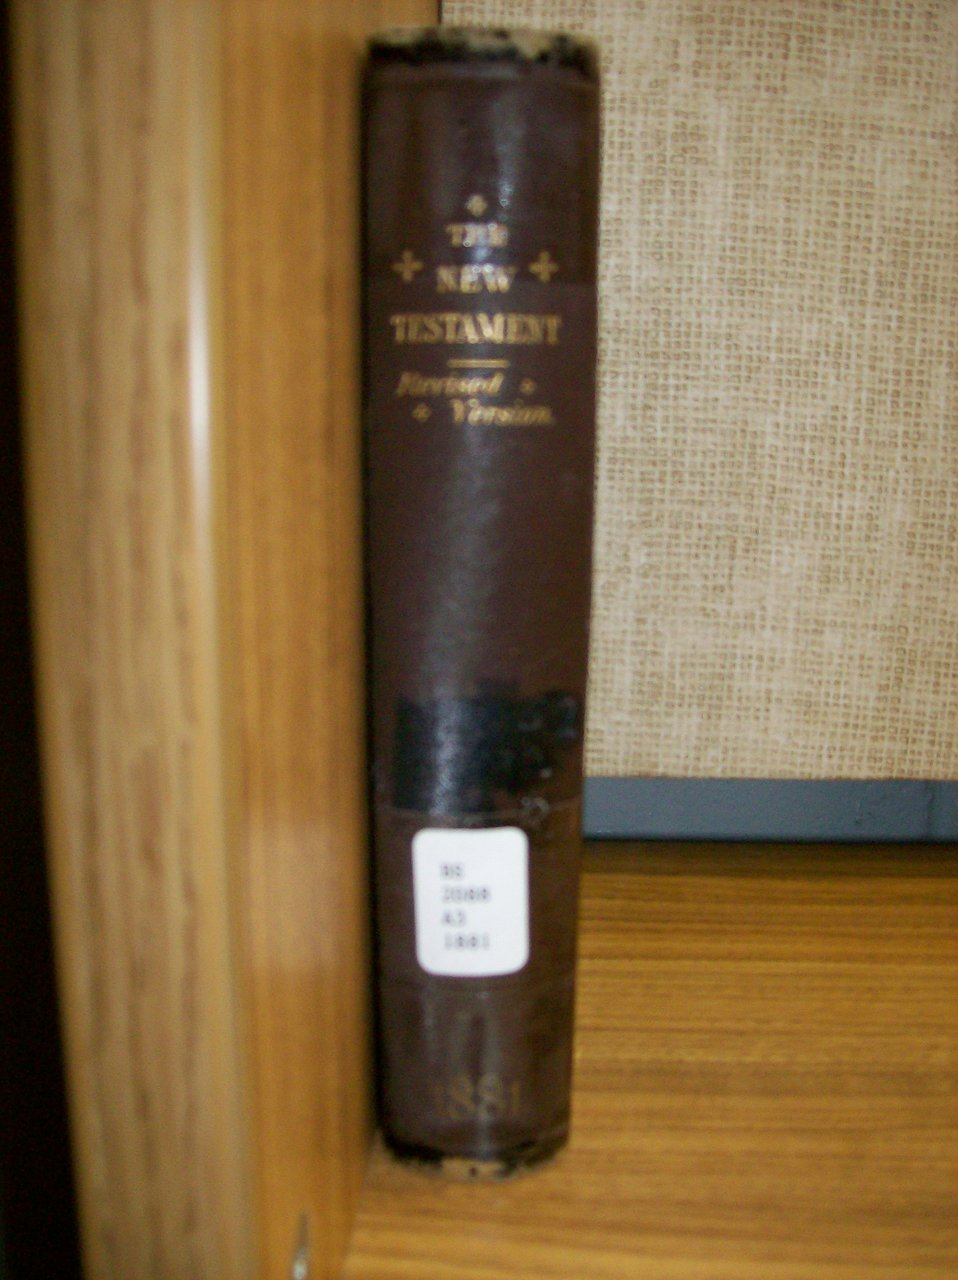 This is a photo I took of an antique copy of the 1881 Revised Version of the New Testament. I found this in the library at Calvary Bible College, hence the library marker on the spine. The photo is all my own work, and the RV Bible has never had any valid